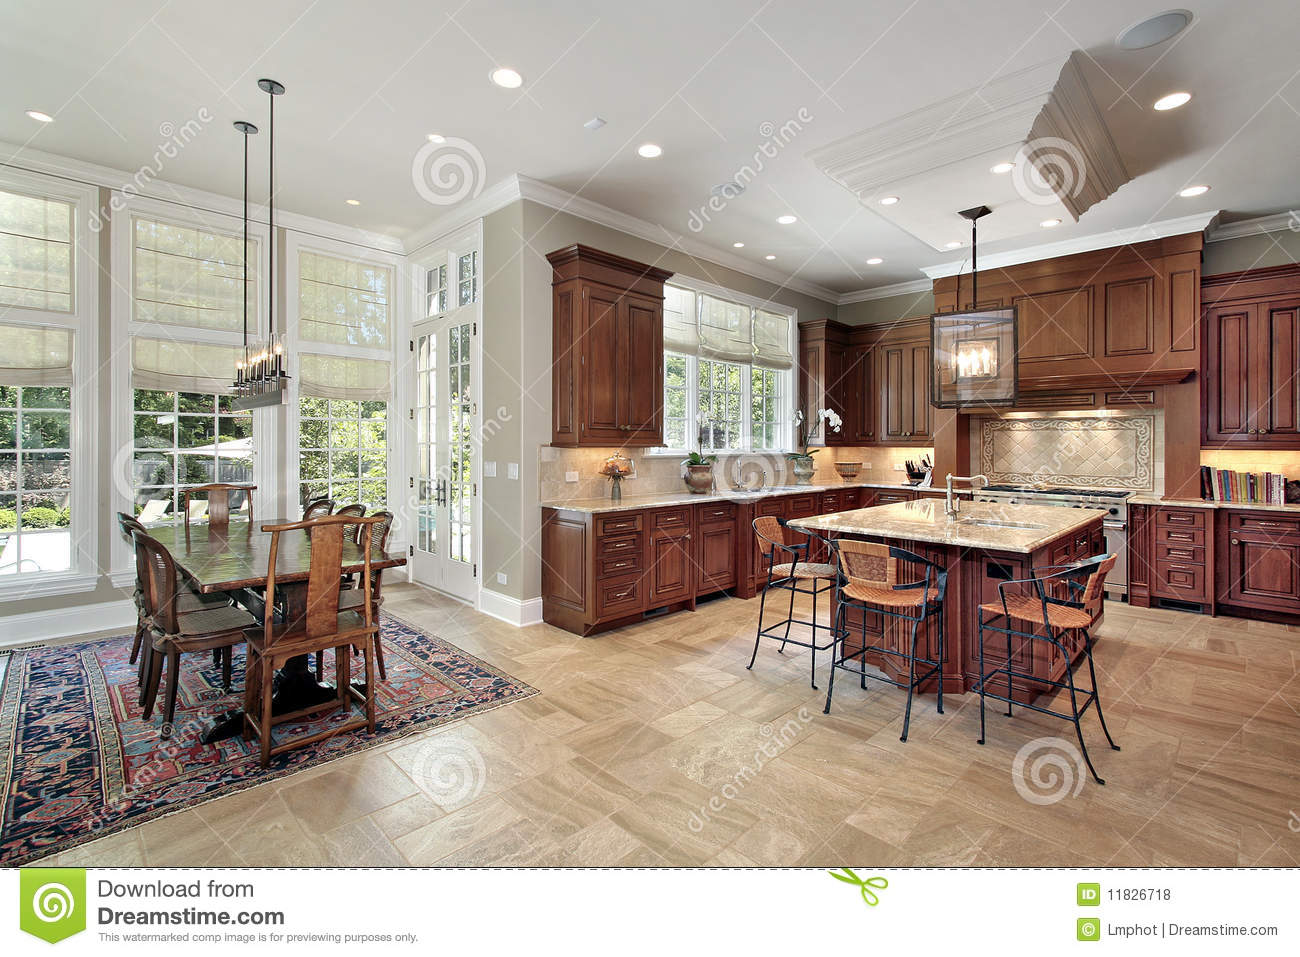 Design Decorate New House Large Kitchen With Eating Area Royalty Free Stock Photos